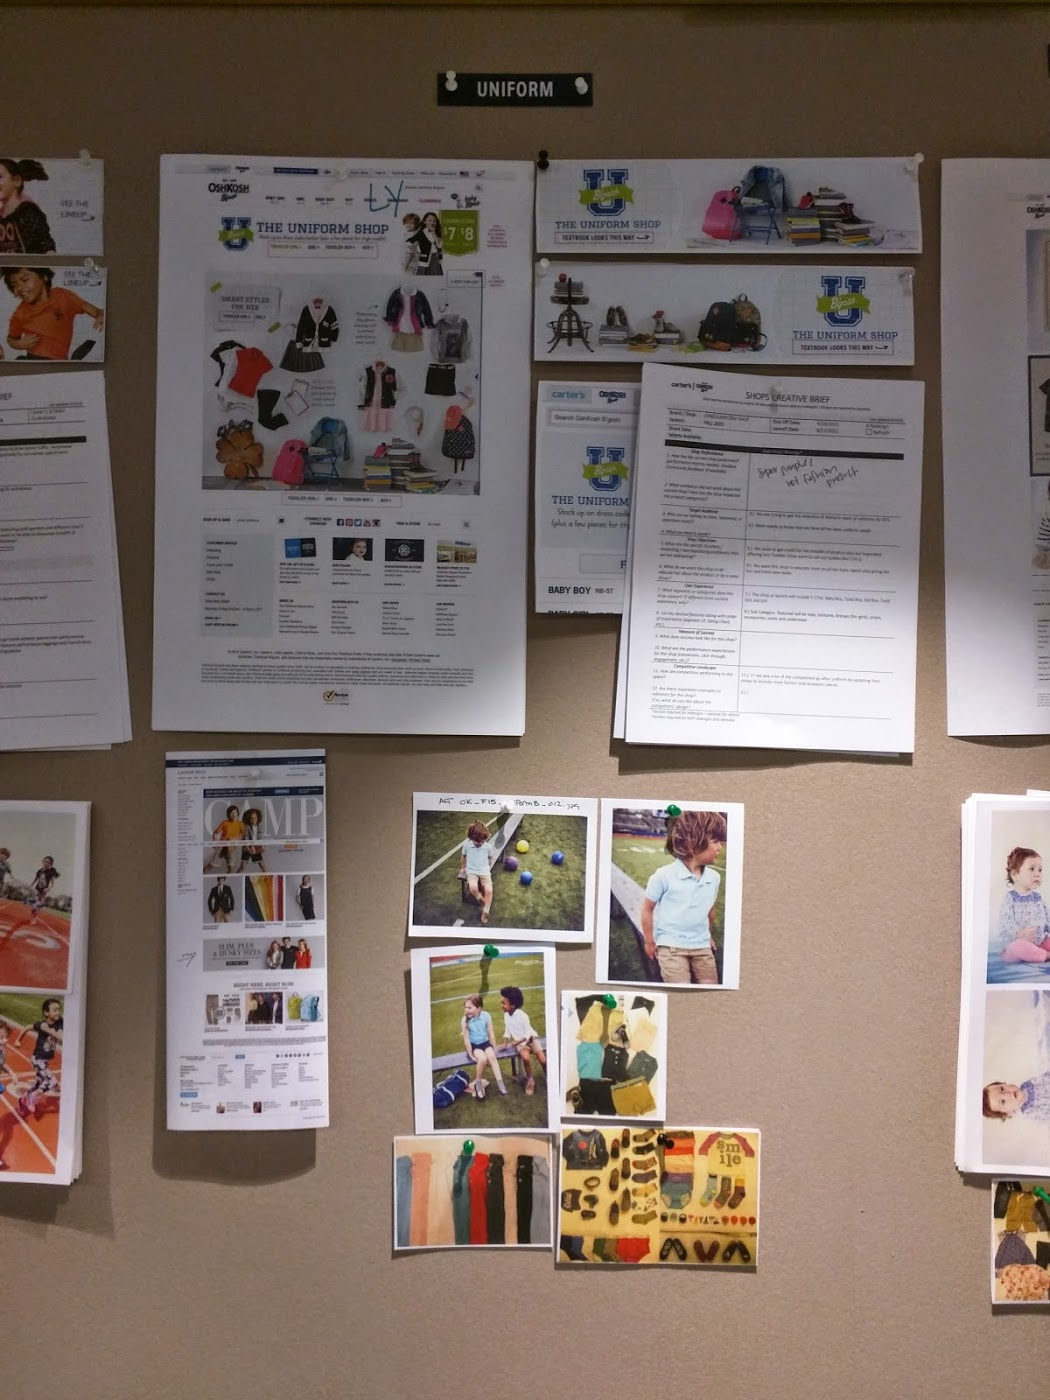 A well-lit corkboard featuring printed concepts with note for various email campaigns, including different photography options and clothing laydown shots